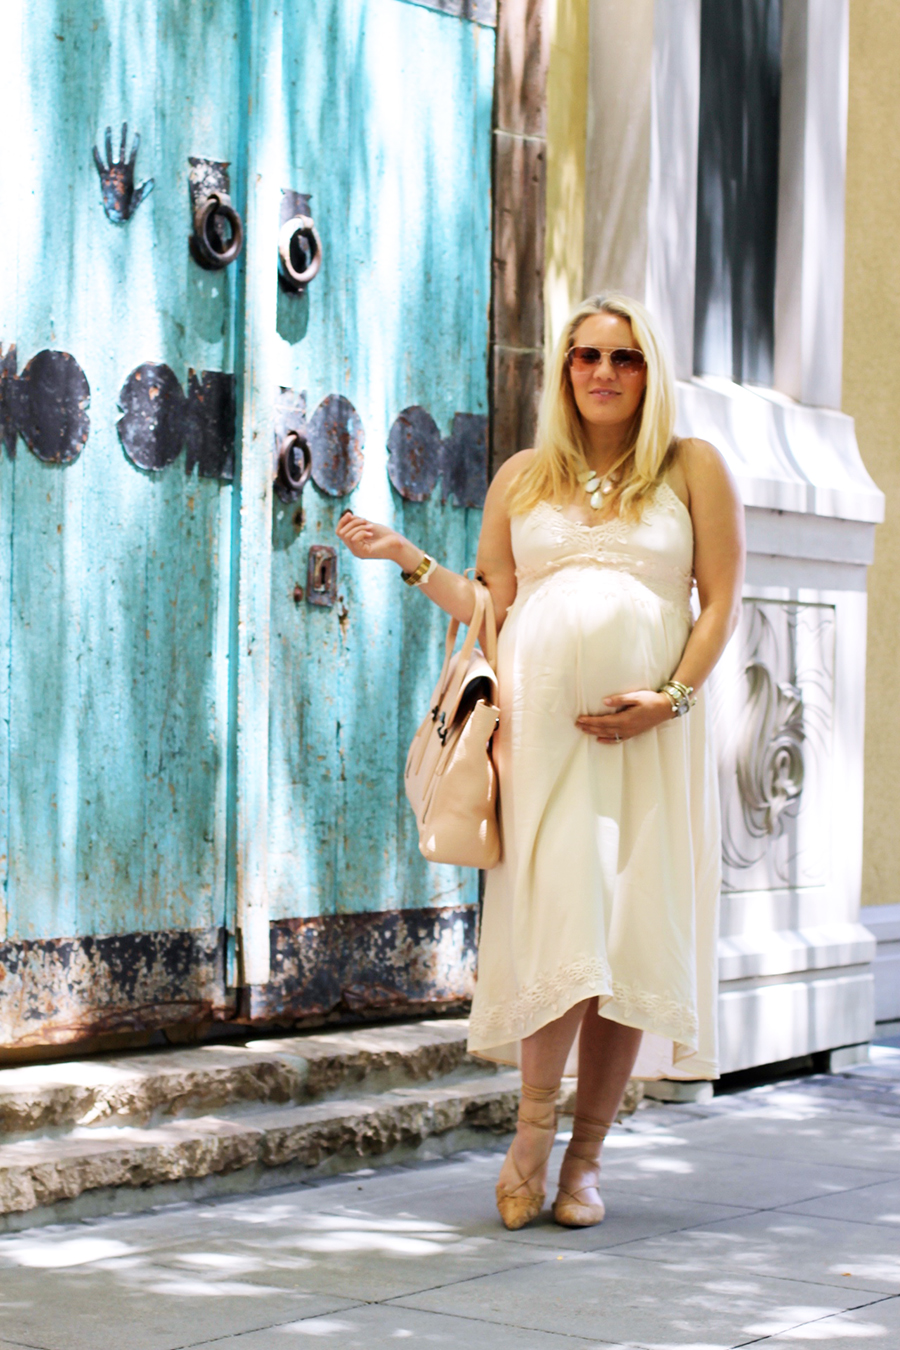 Forever 21 Lace Dress-Maternity Style-Outfit Inspiration-Pregnancy Style-Have Need Want 2